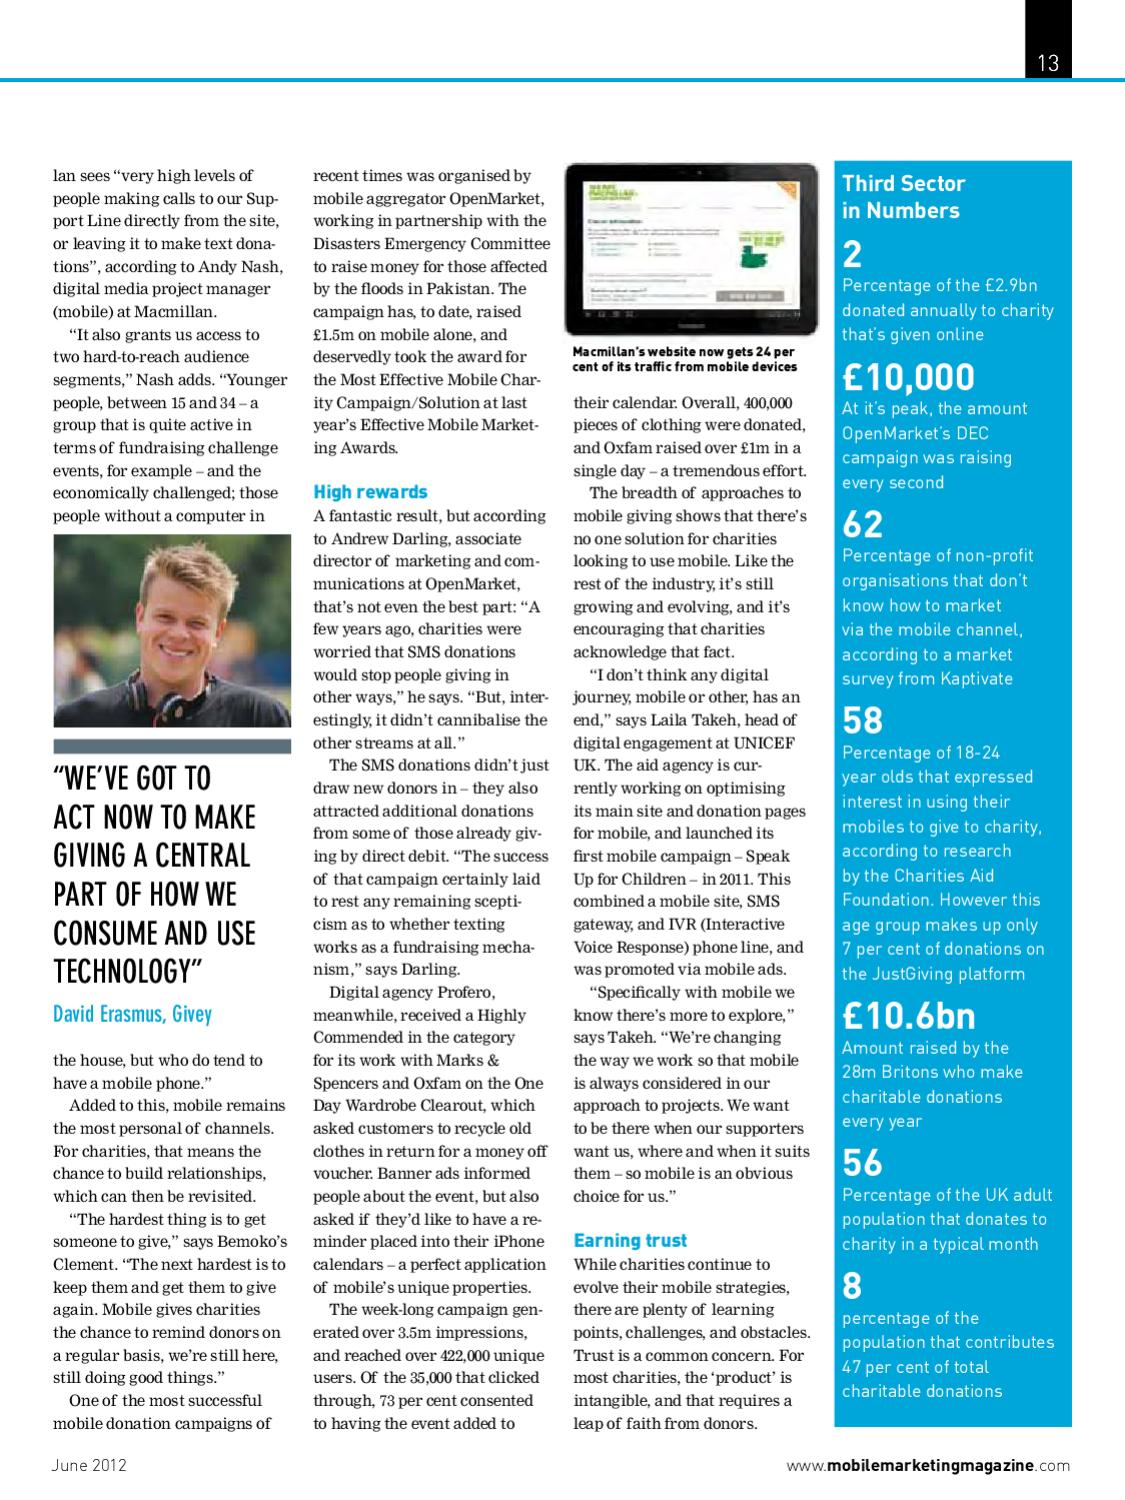 Mobile Marketing Issue 10, June 2012 by Mobile Marketing